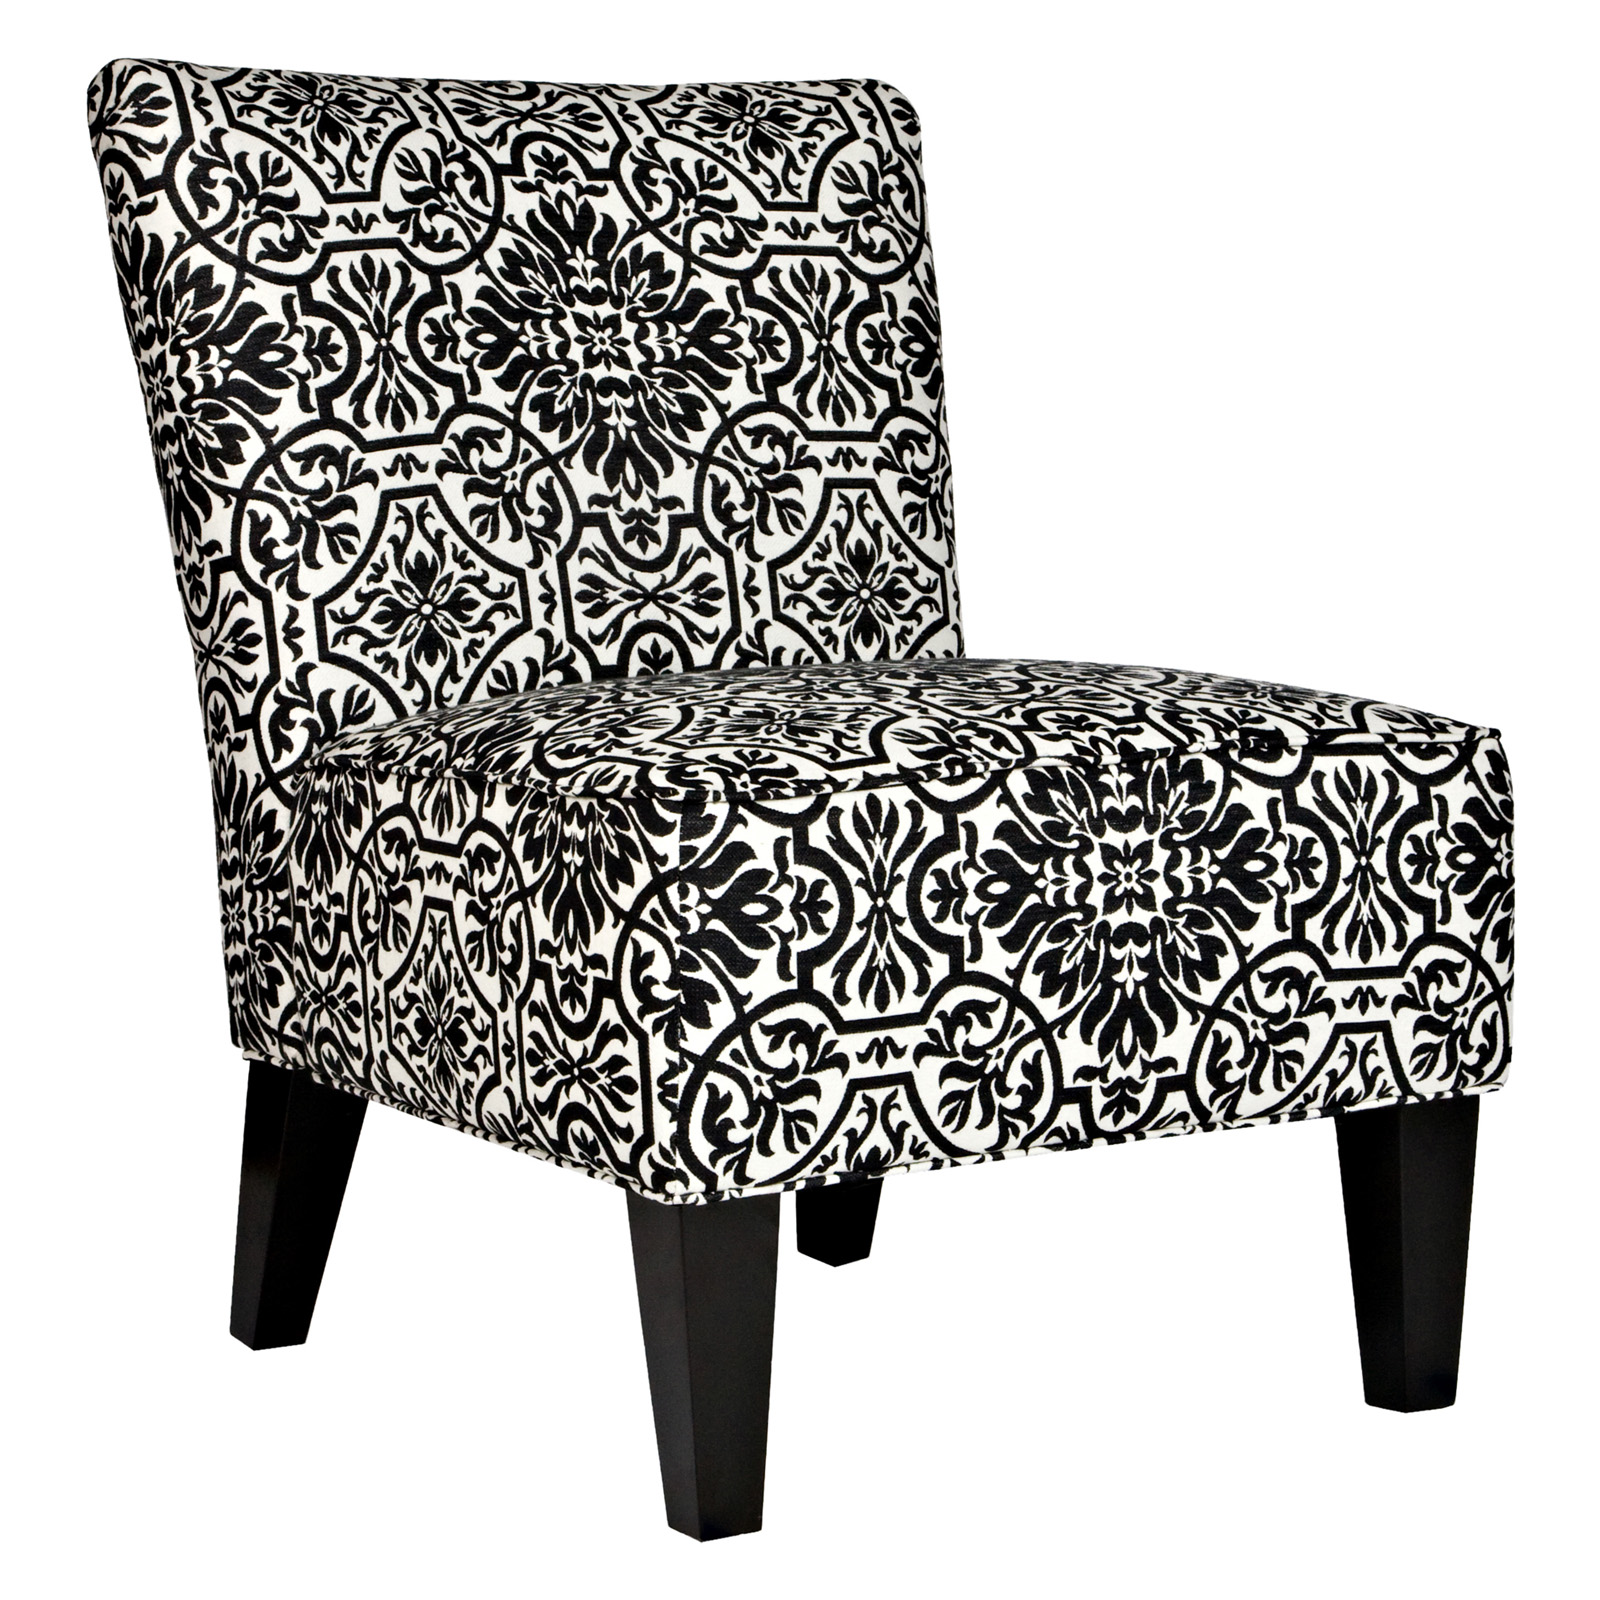 angelo HOME Davis Chair Black & White Damask Accent